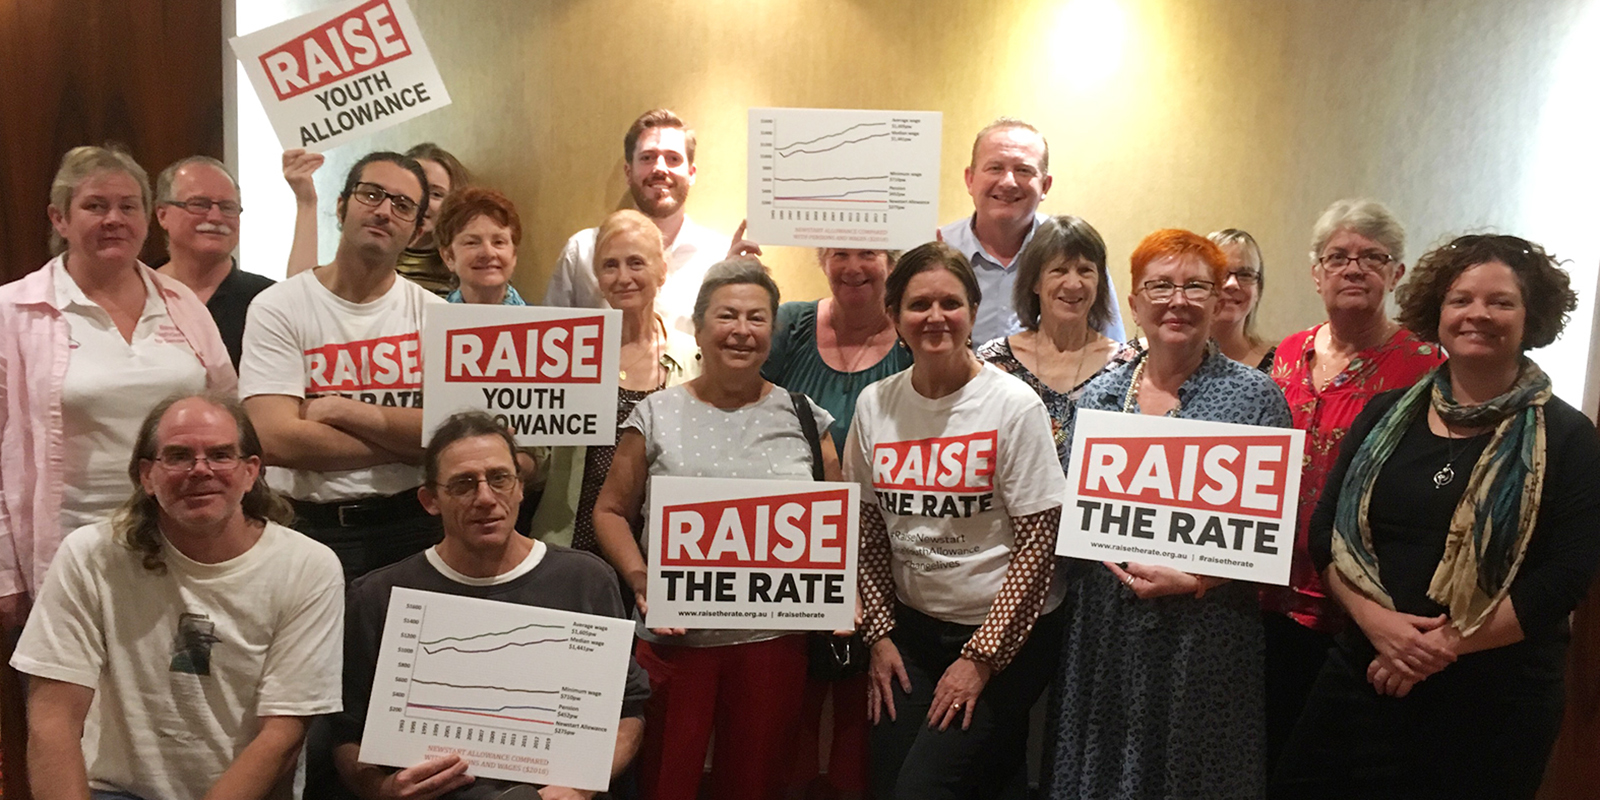 Impact Fund: Raise the Rate for Good